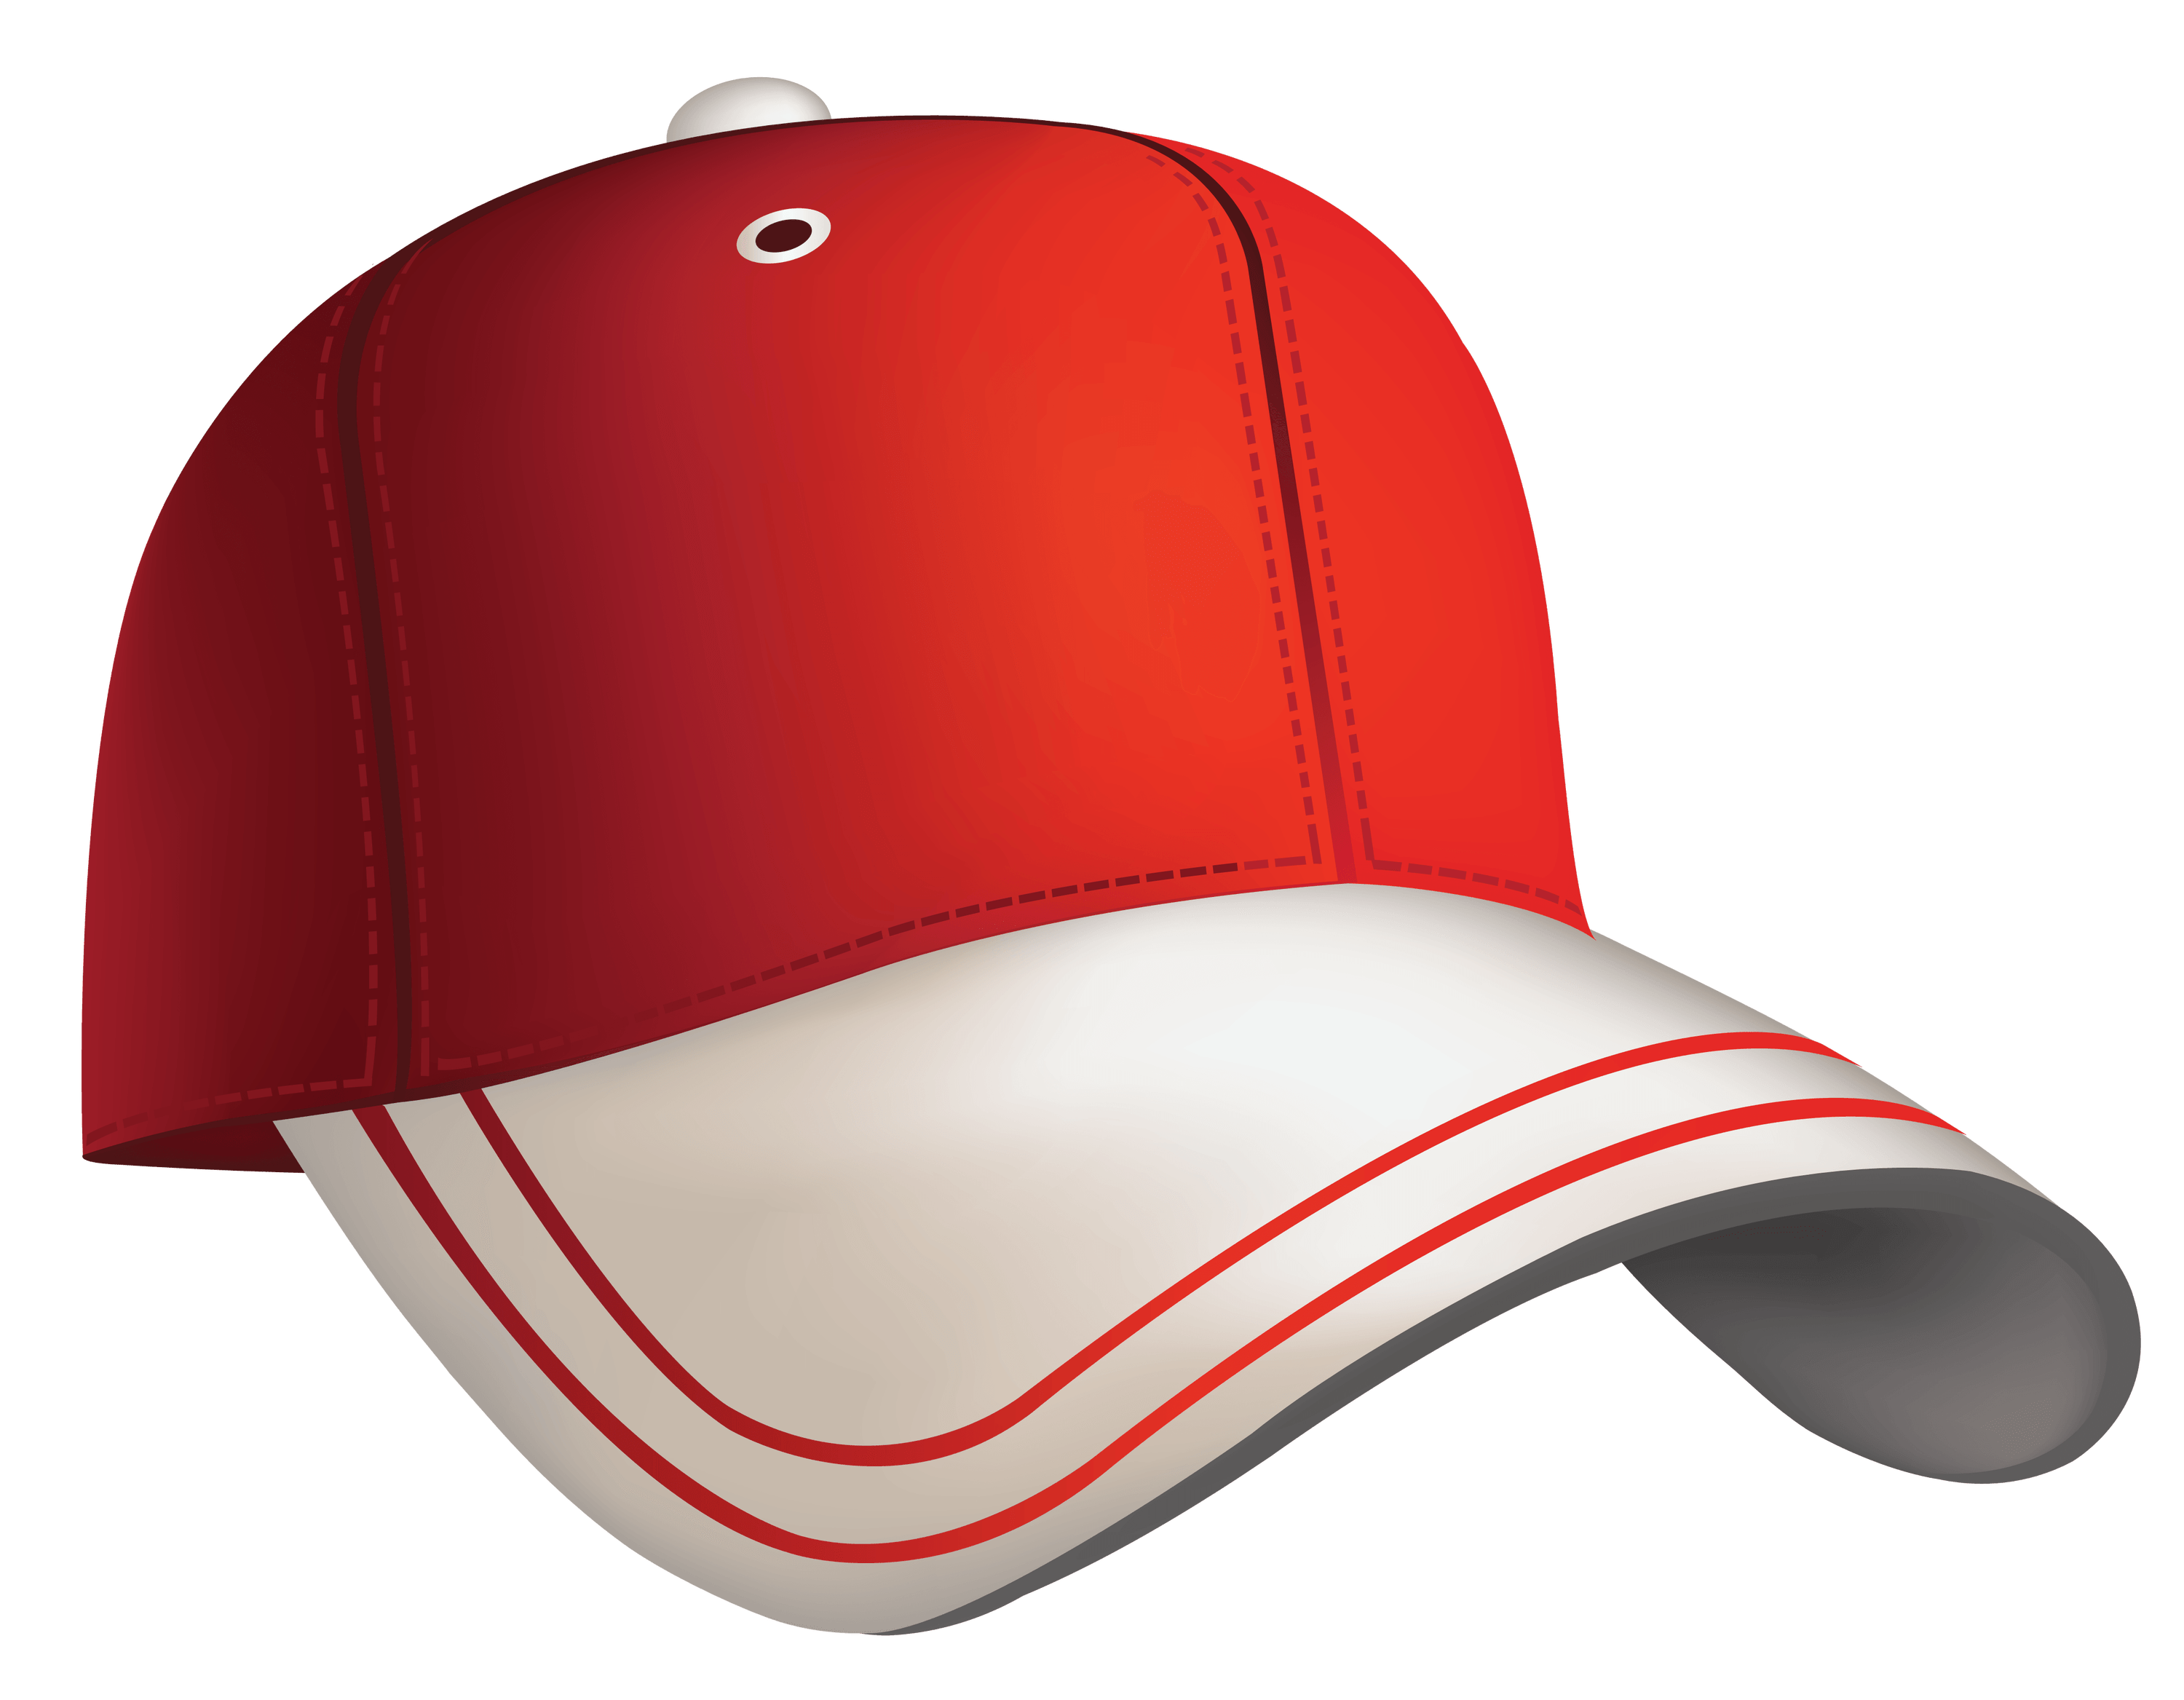 Baseball cap black and white clipart png freeuse library Baseball Cap transparent PNG - StickPNG png freeuse library